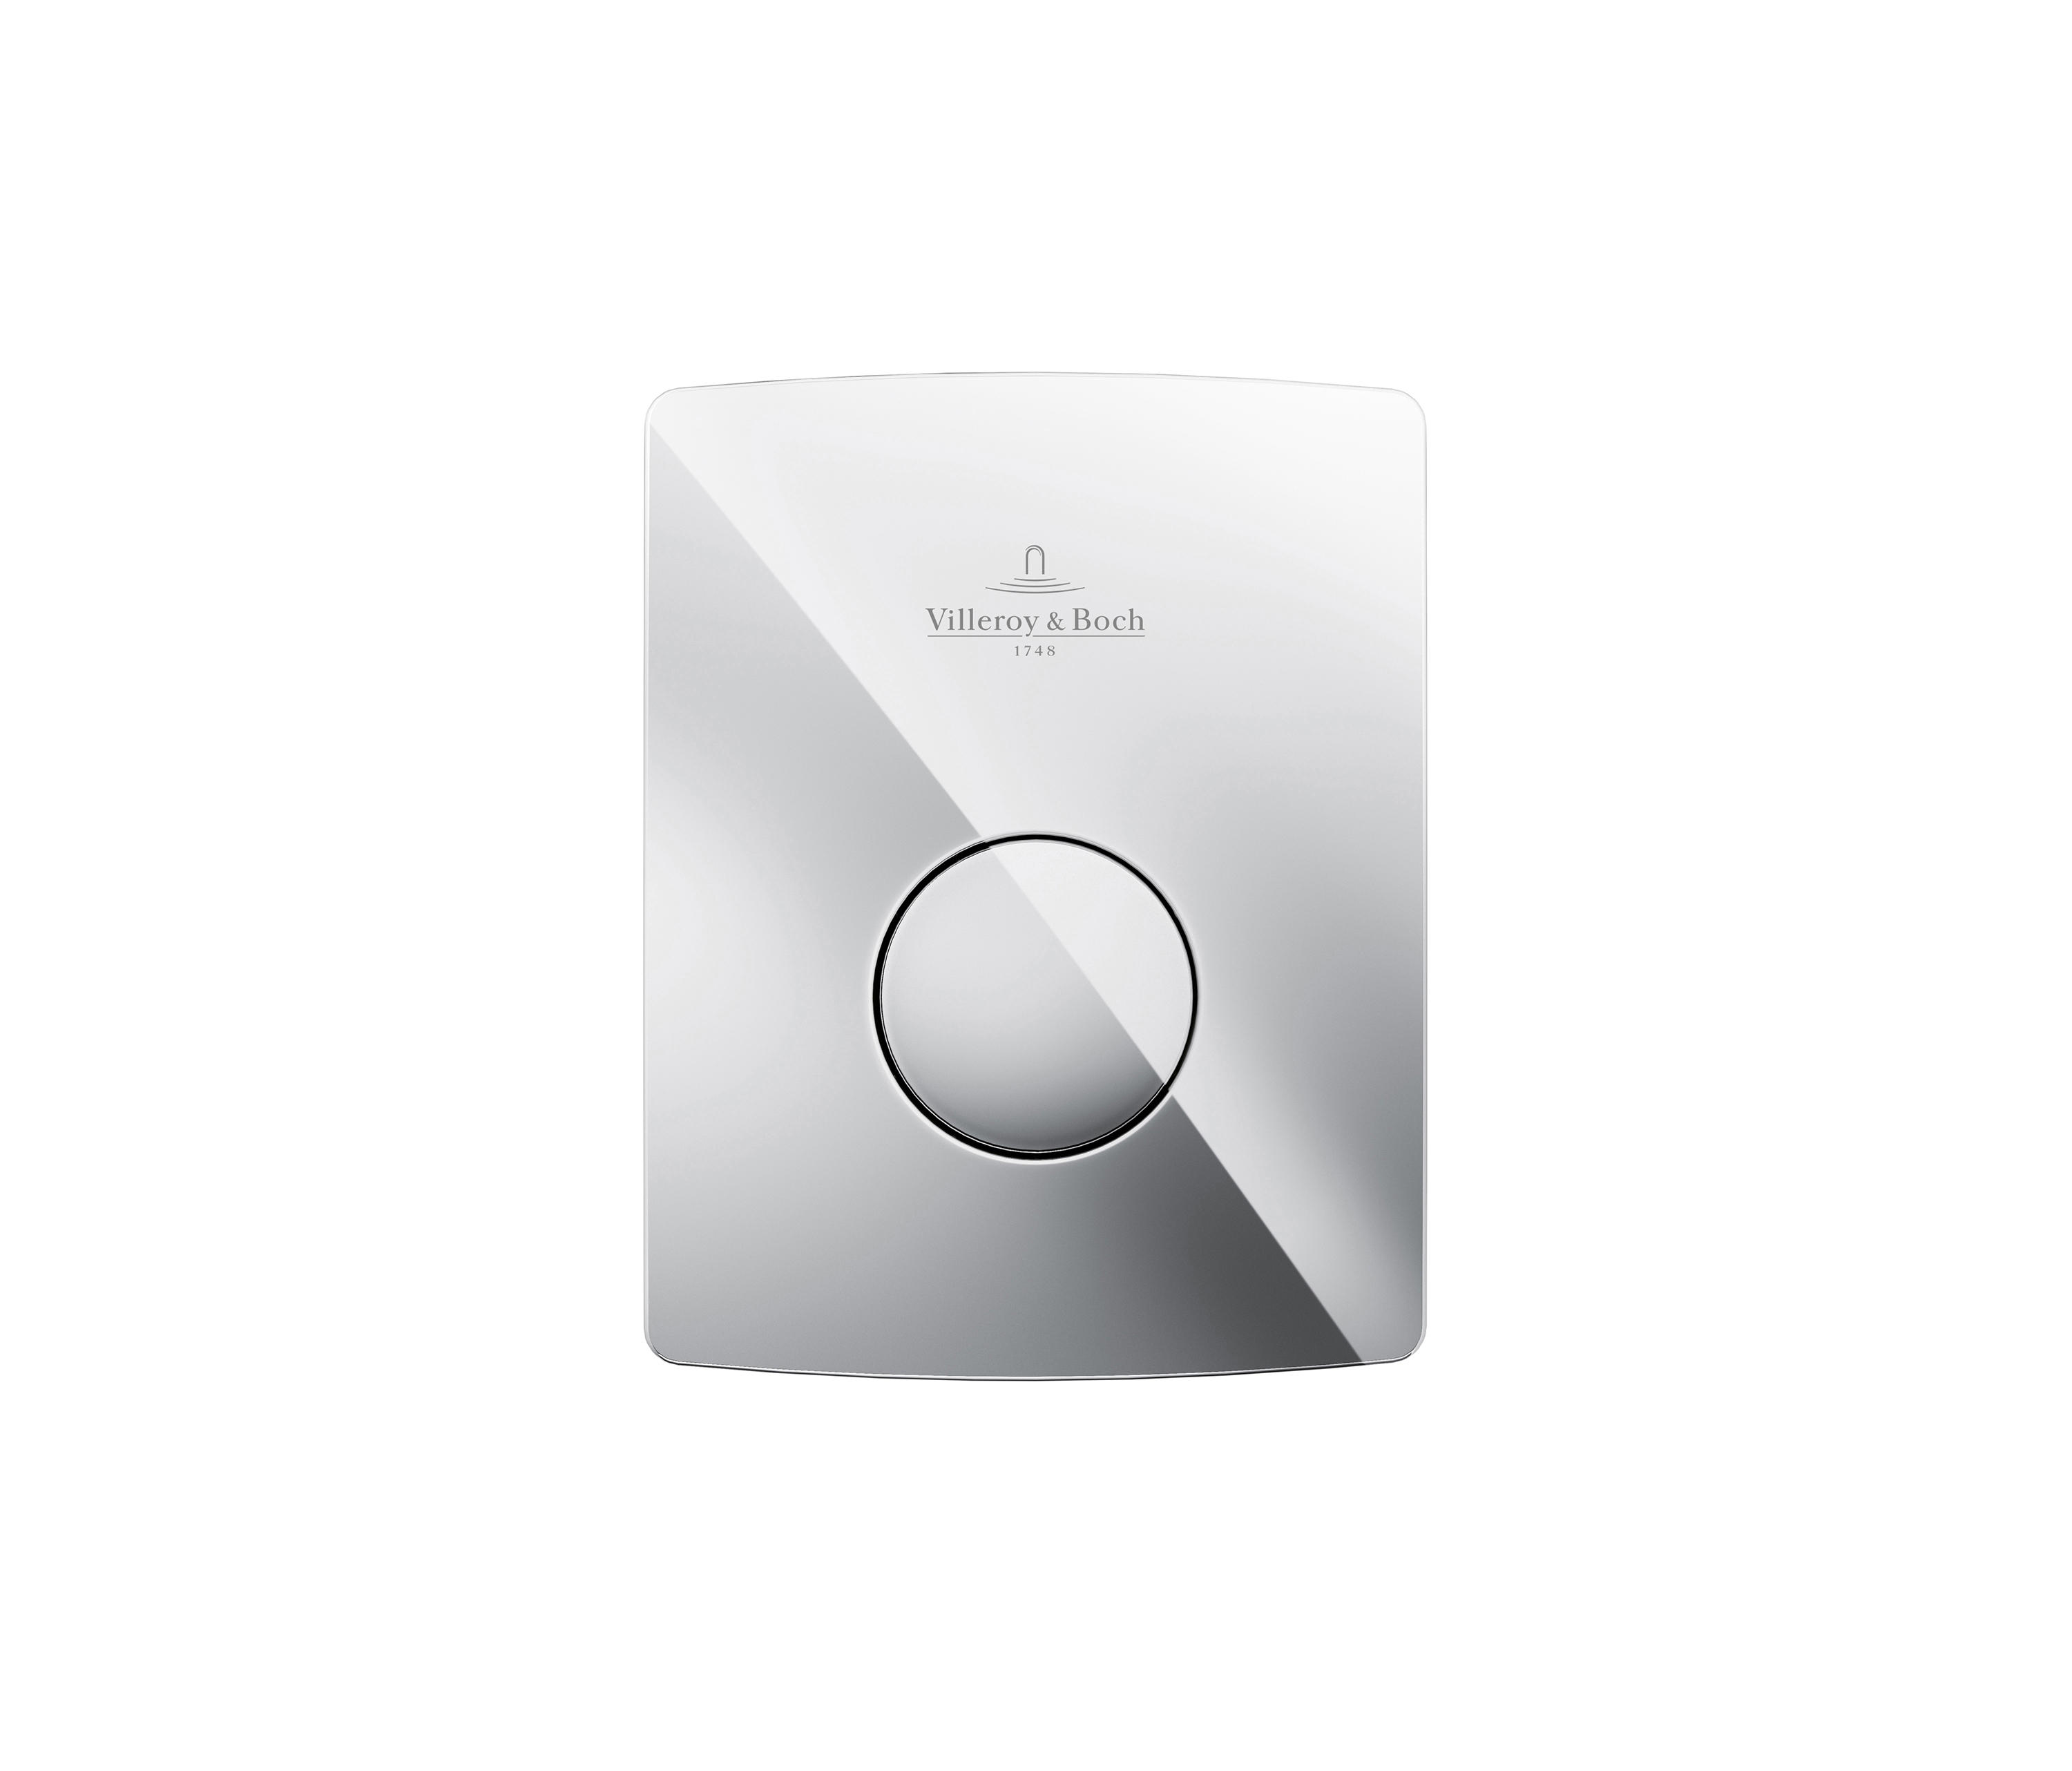 Badausstellung Mettlach viconnect 92194461 flushes from villeroy boch architonic